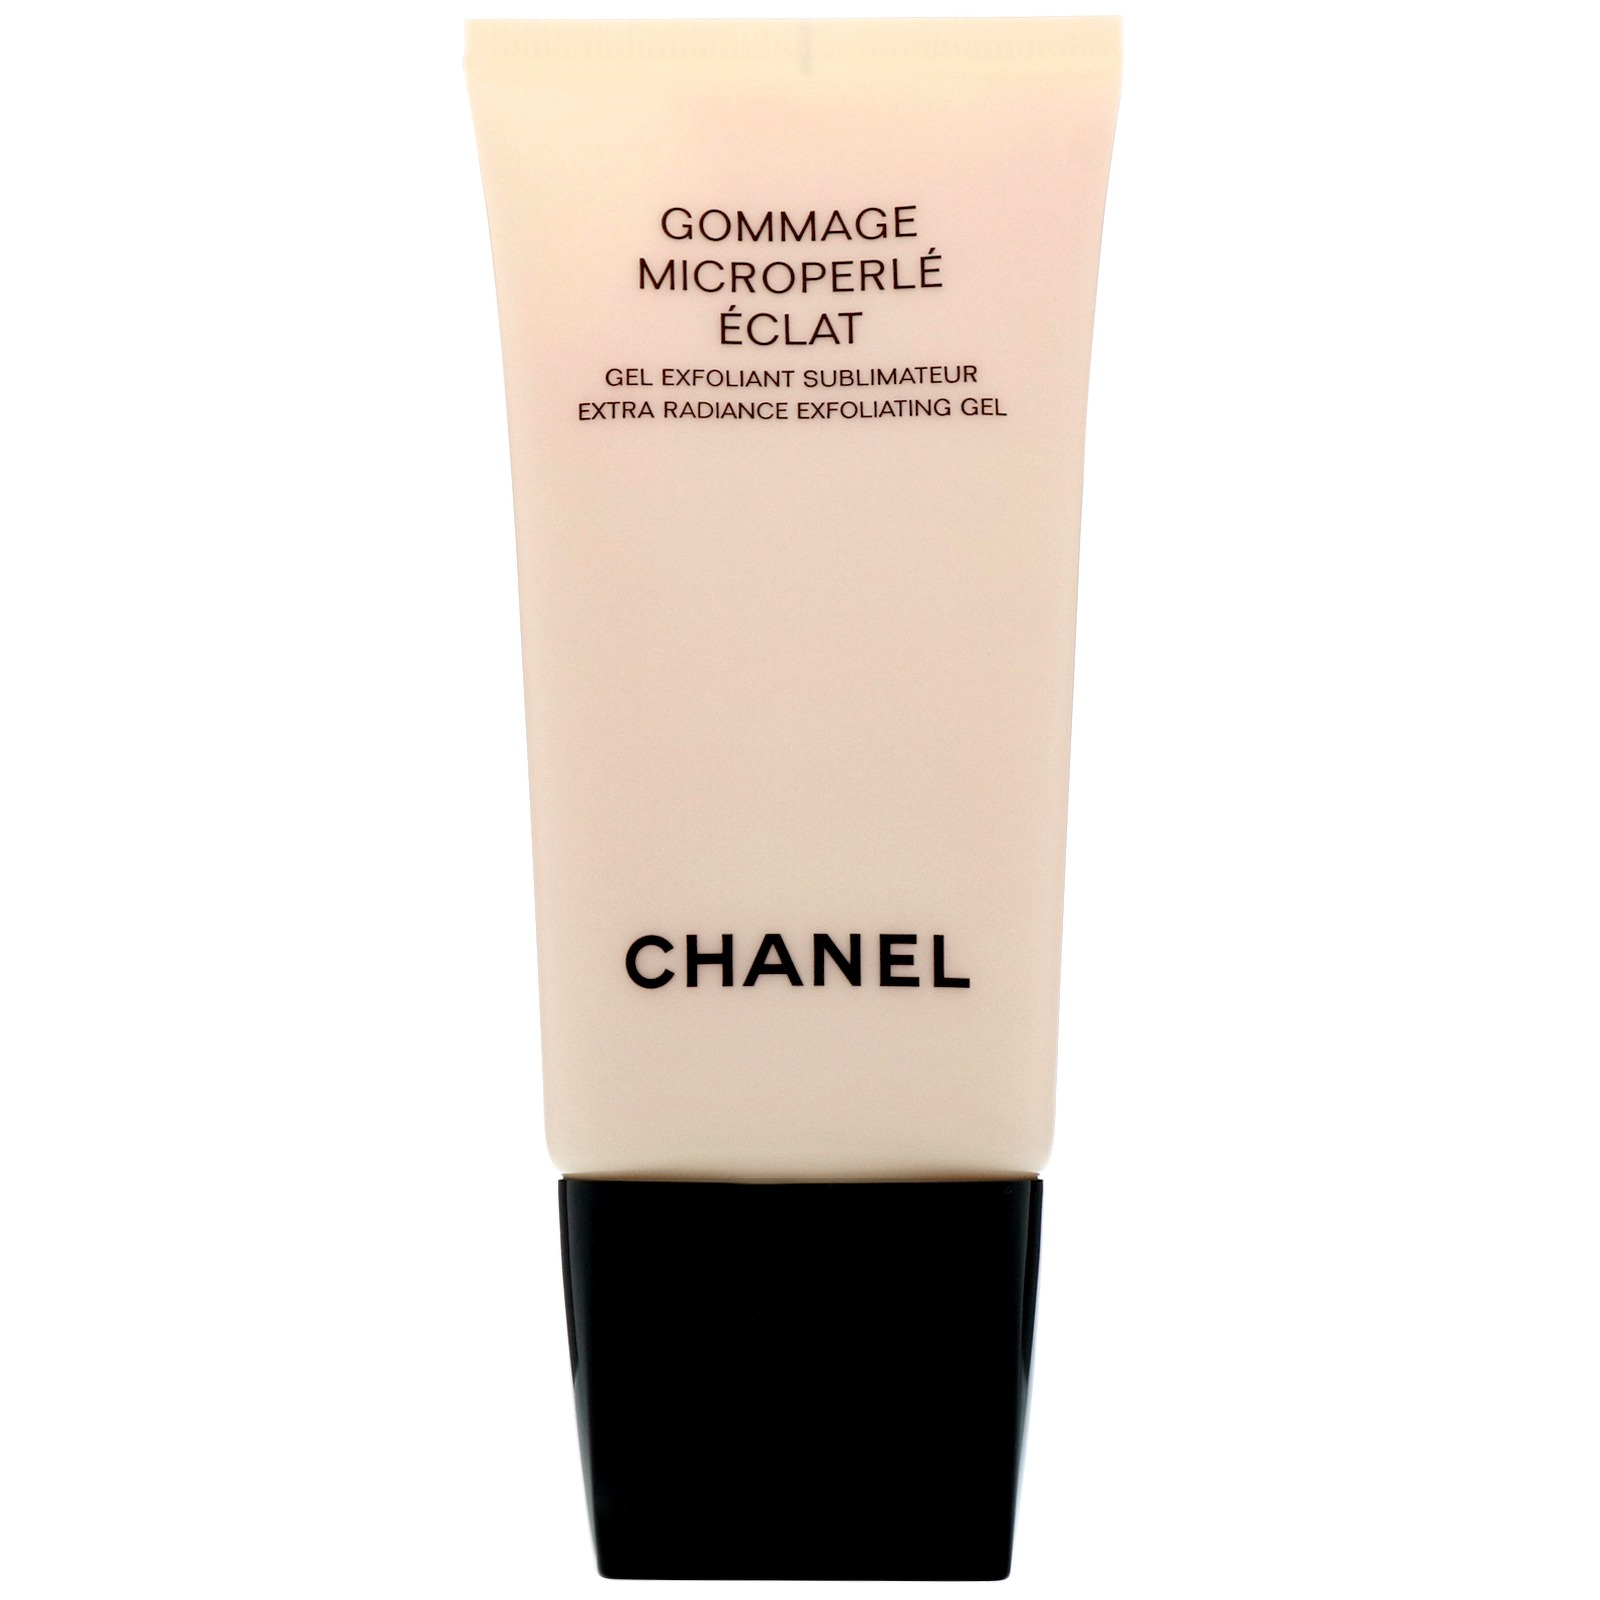 Chanel Masks & Scrubs Gommage Microperle Eclat Extra Radiance Exfoliating Gel 75ml